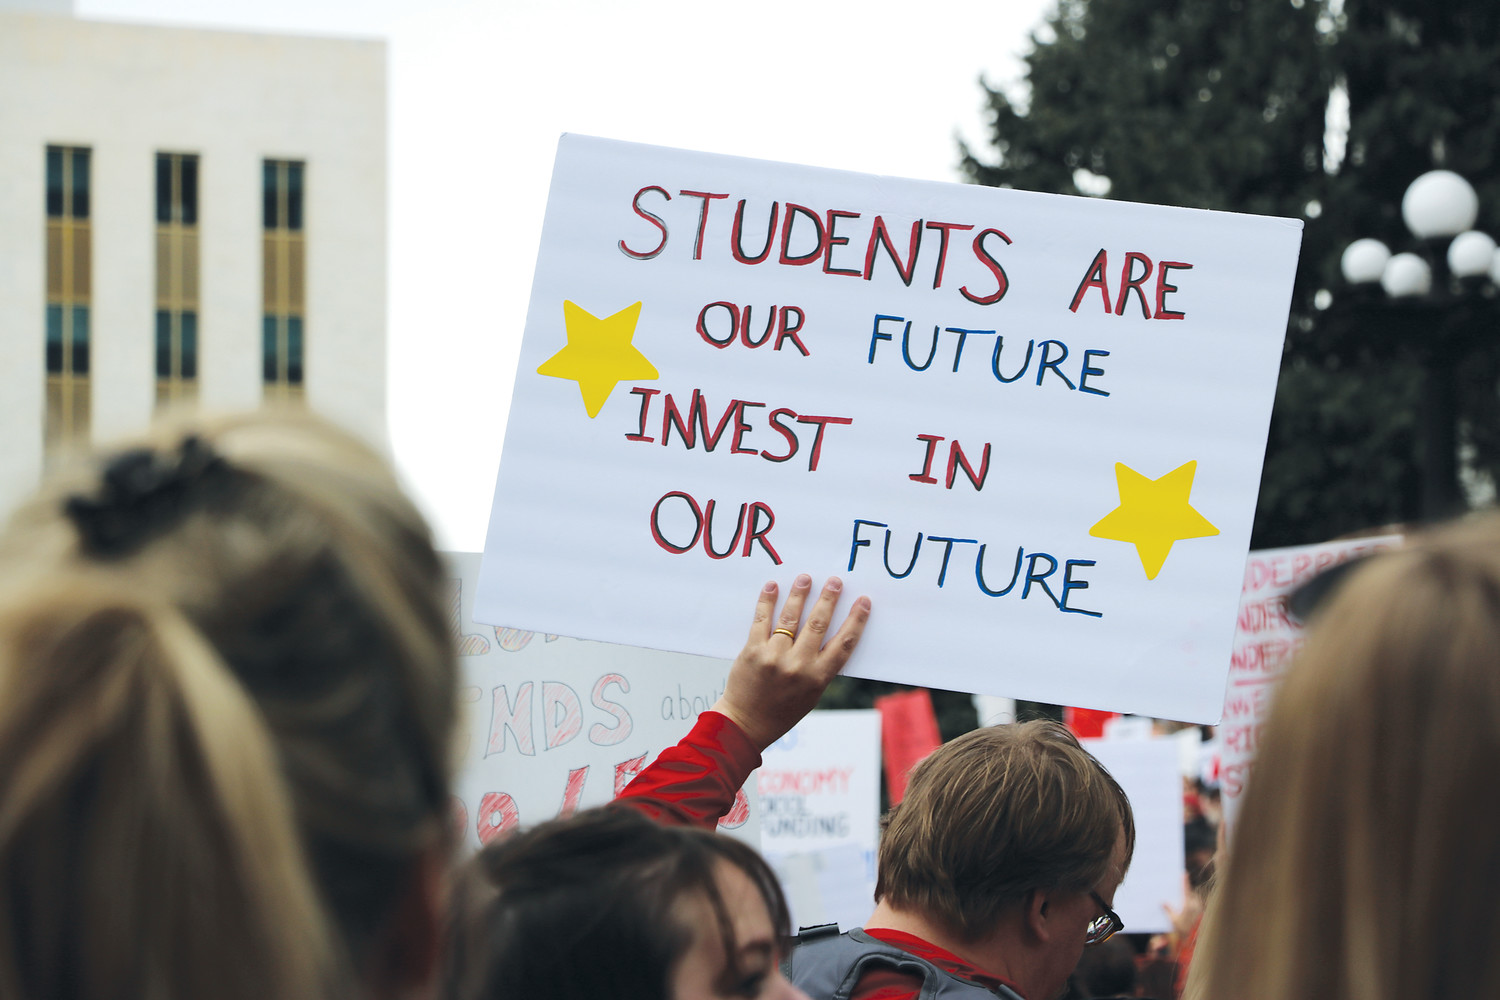 Thousands of teachers in Arizona, Colorado protesting wages, school funding